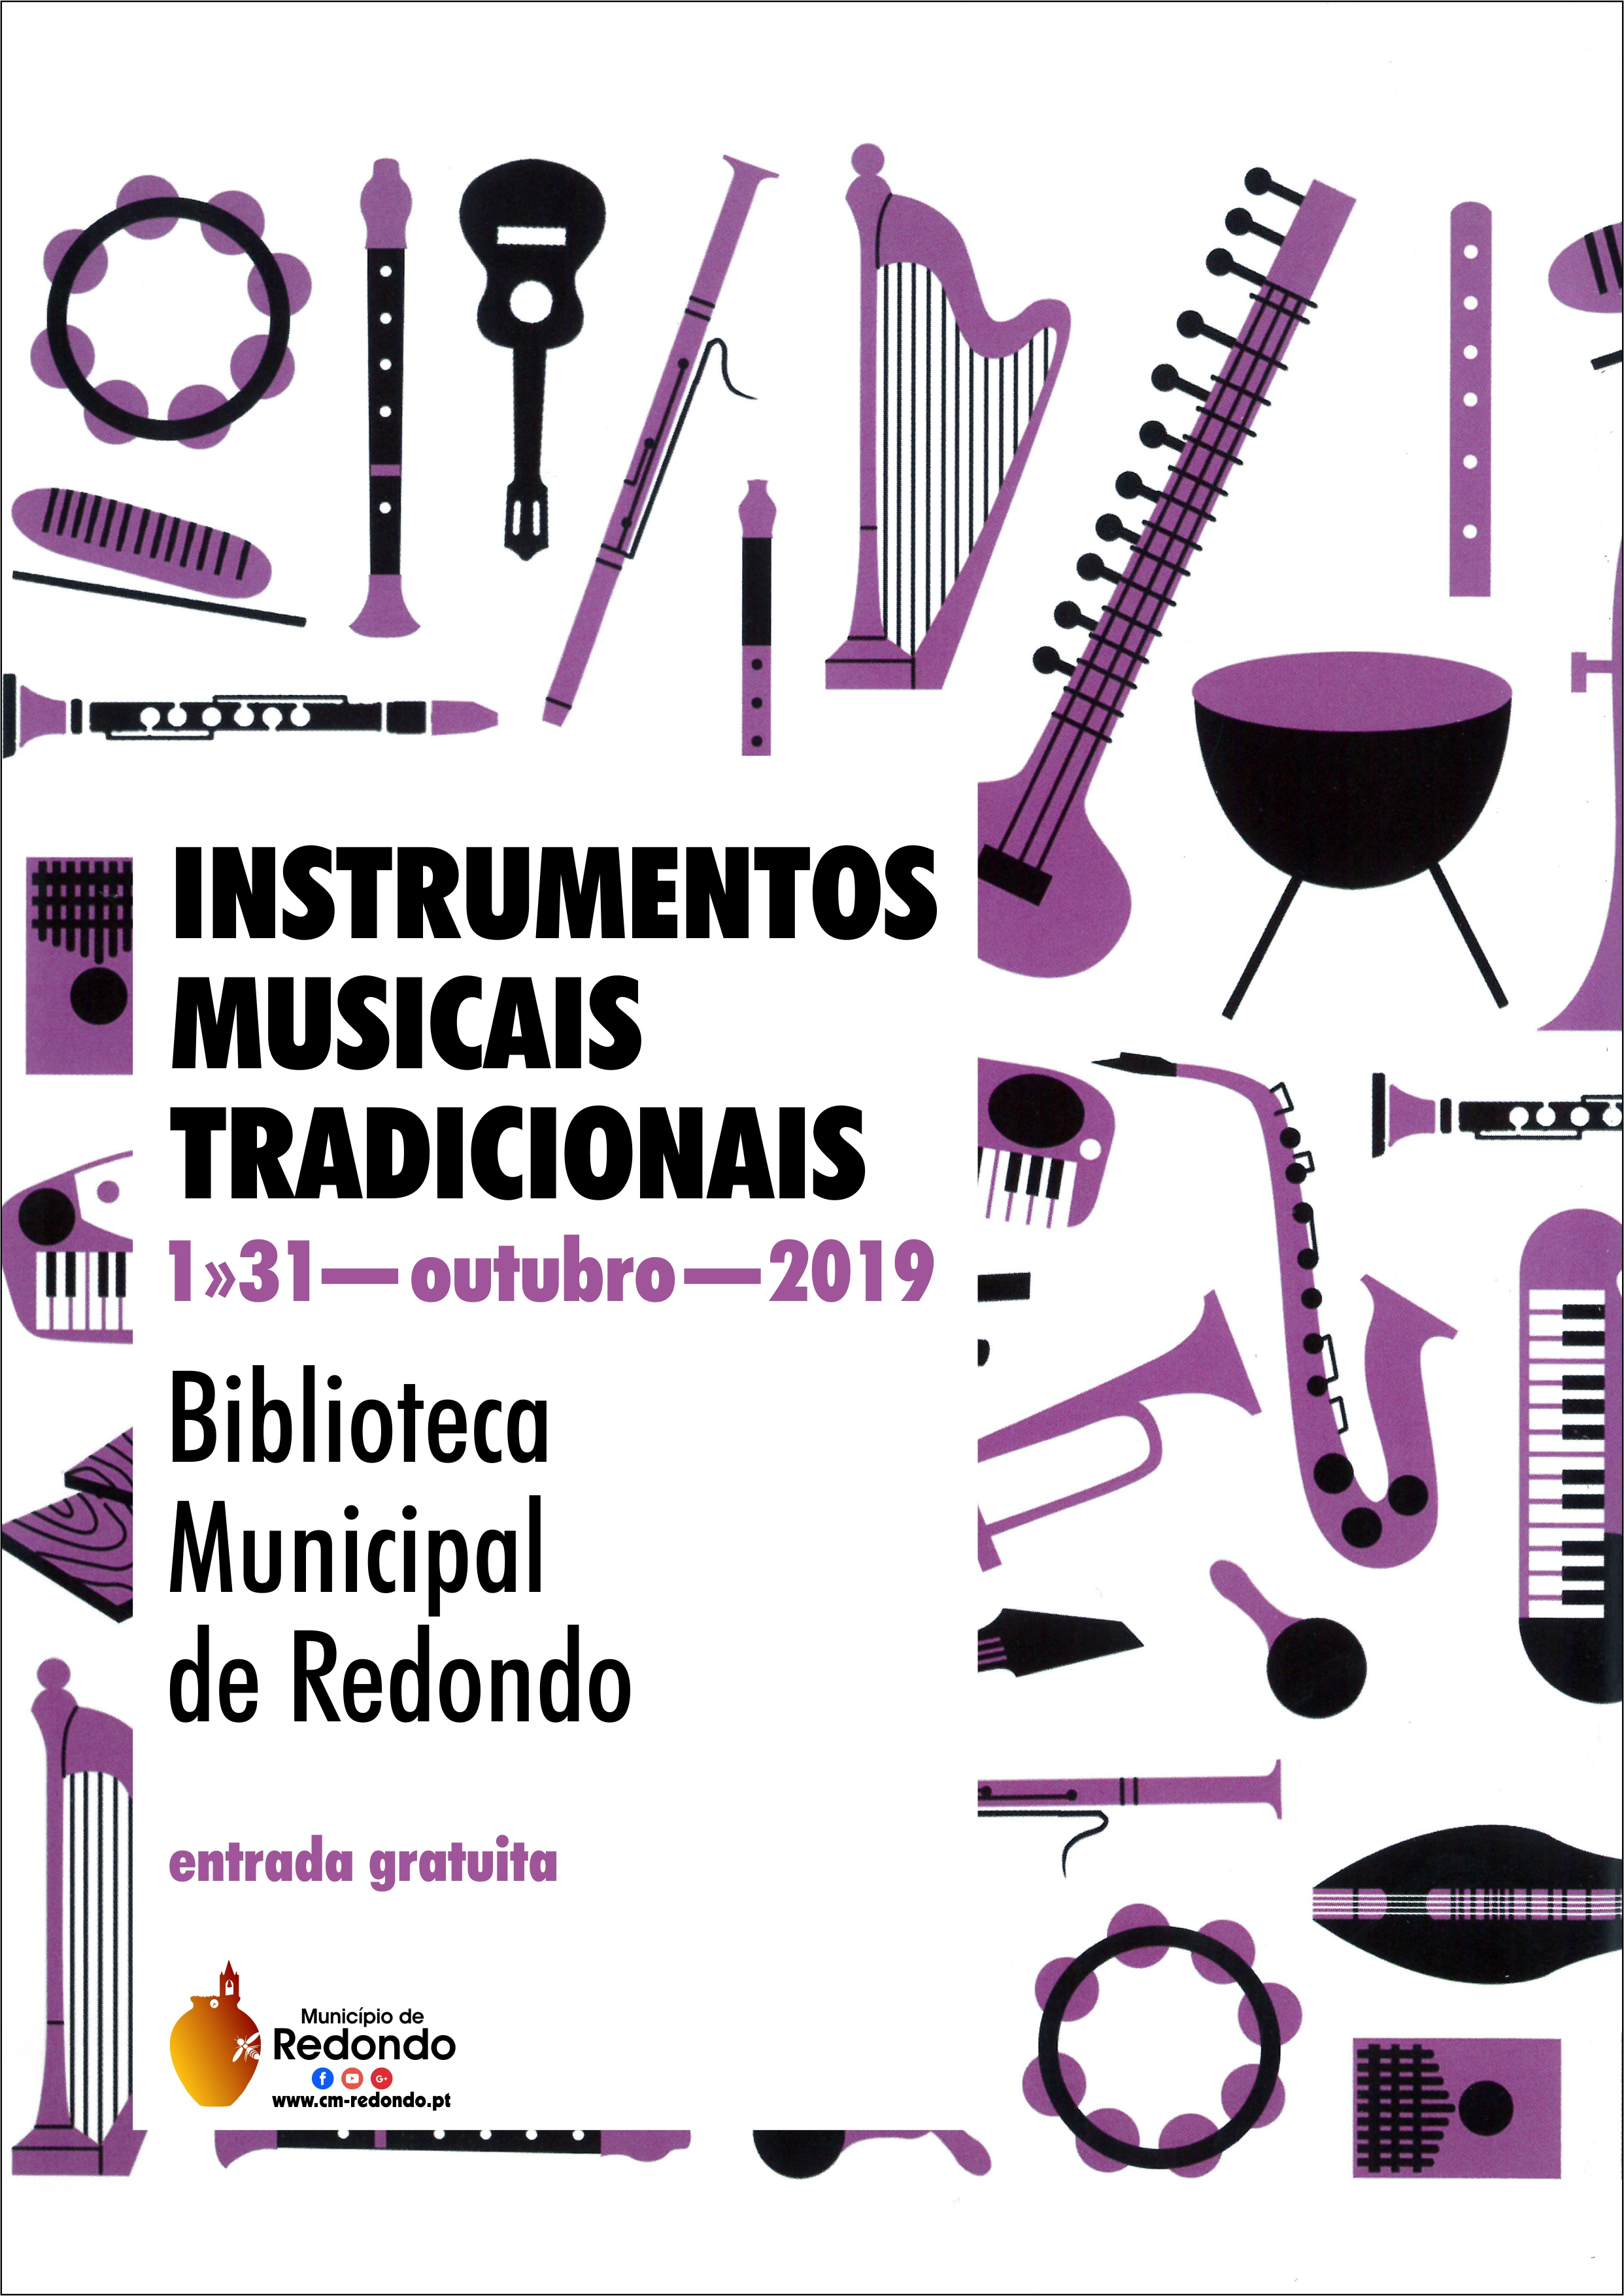 Exposition of Traditional Instruments -- Redondo